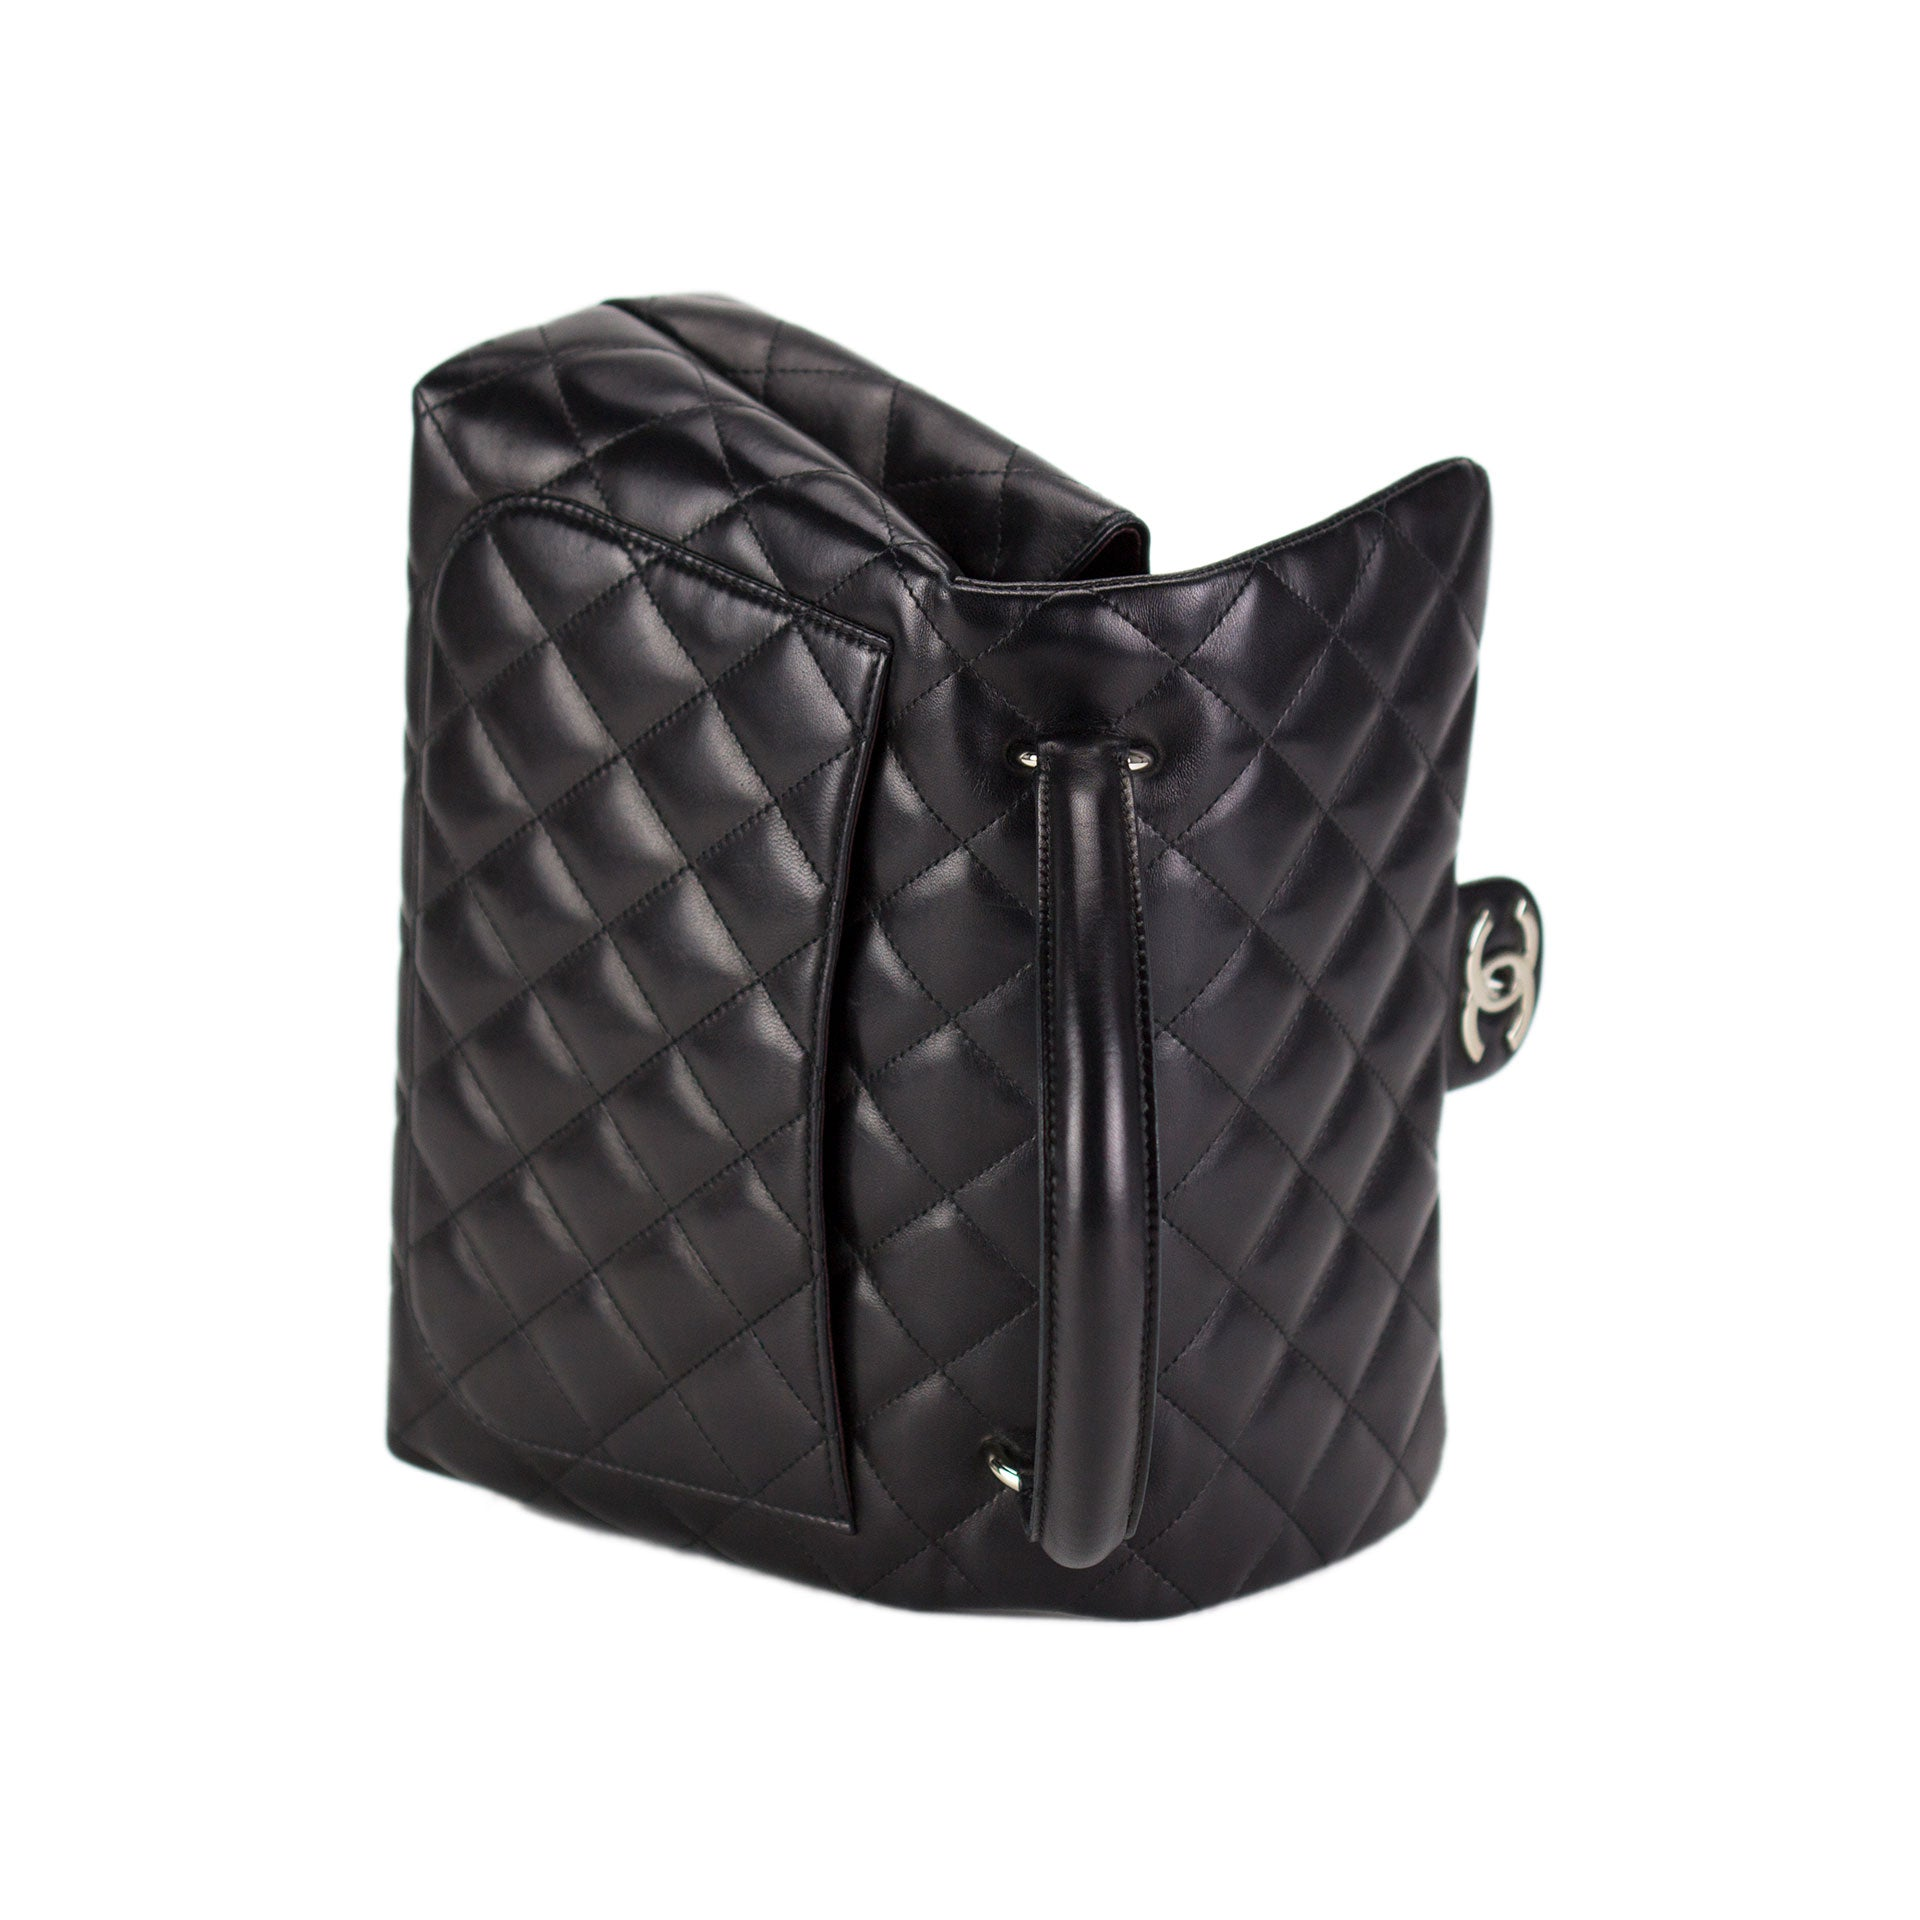 Chanel Top Handle Lambskin Flap